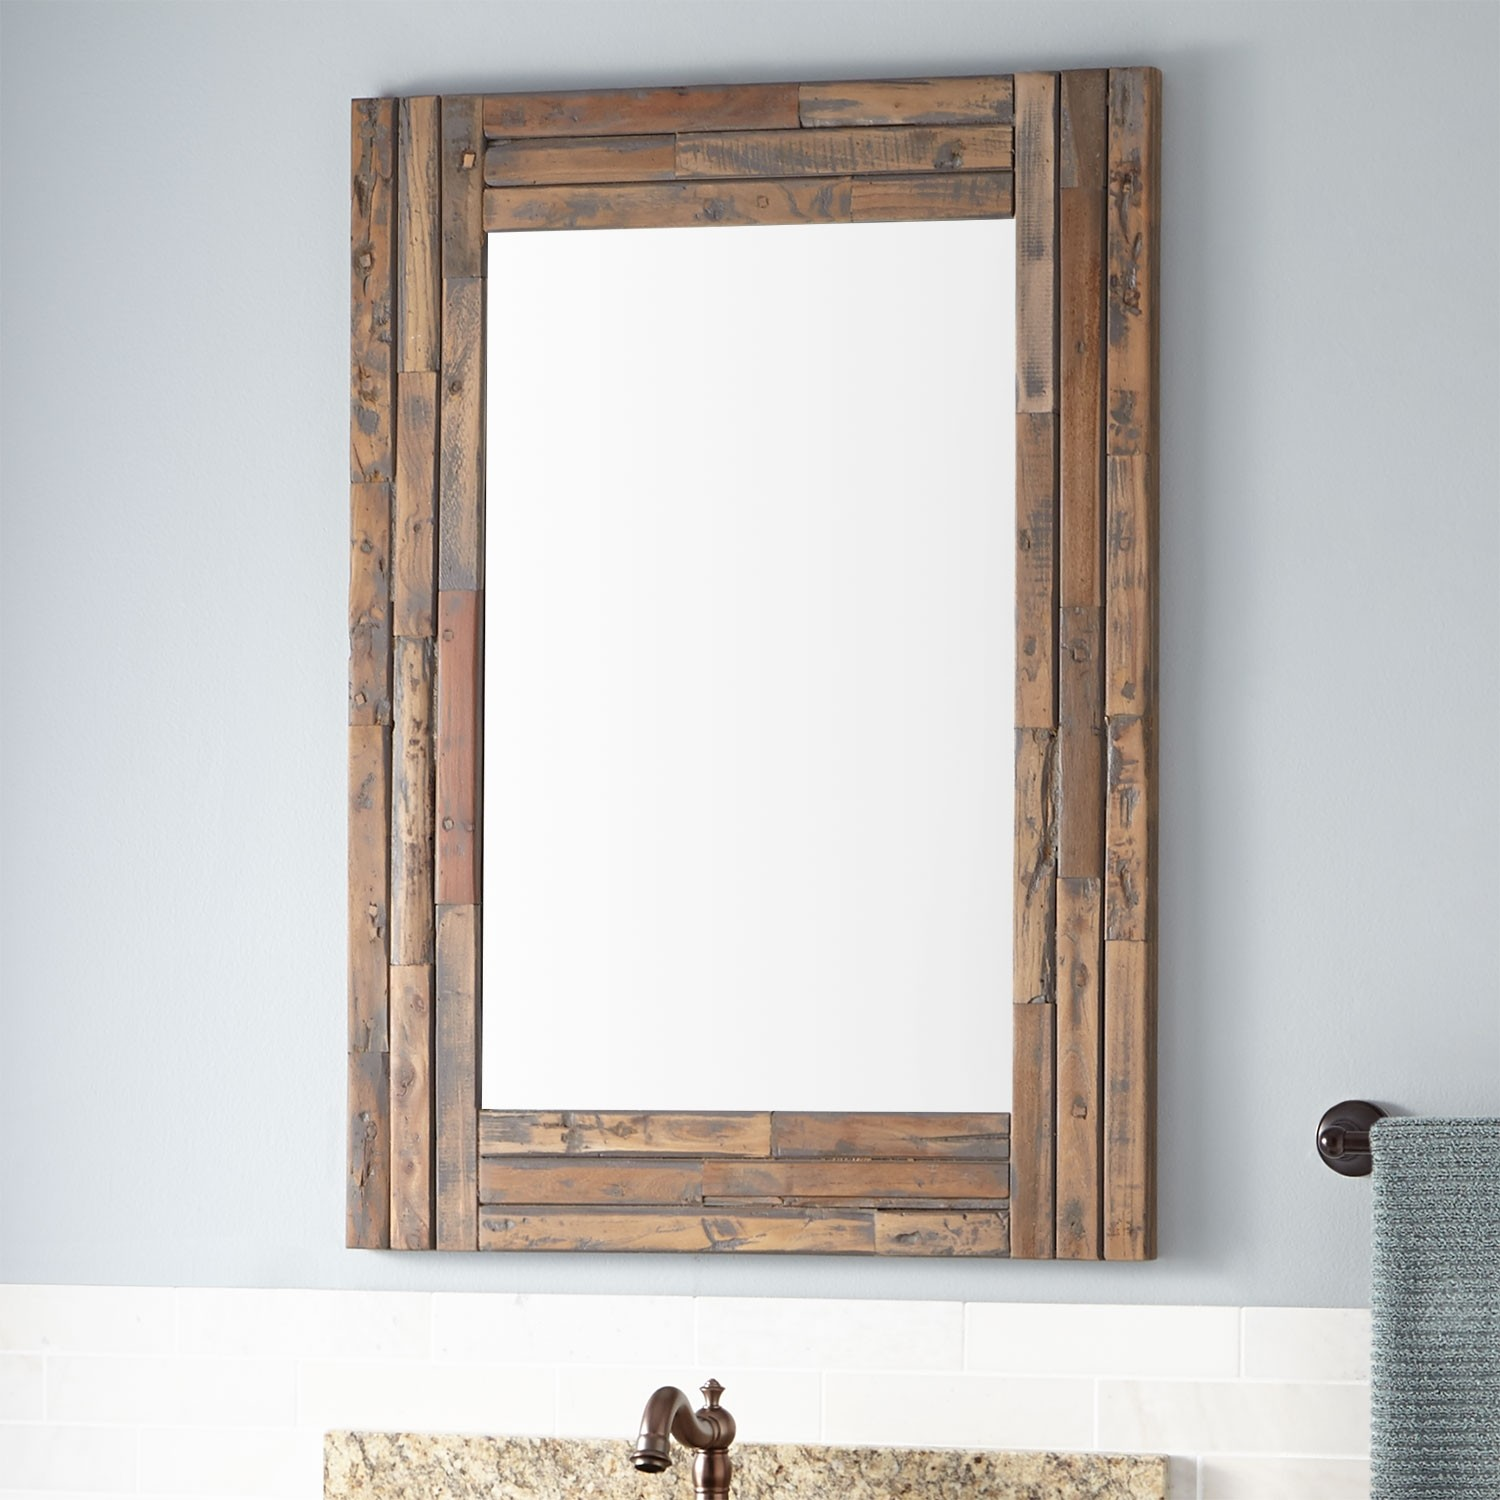 Large Distressed Wood Mirror | Oak Framed Wall Mirror | Reclaimed Wood Mirror